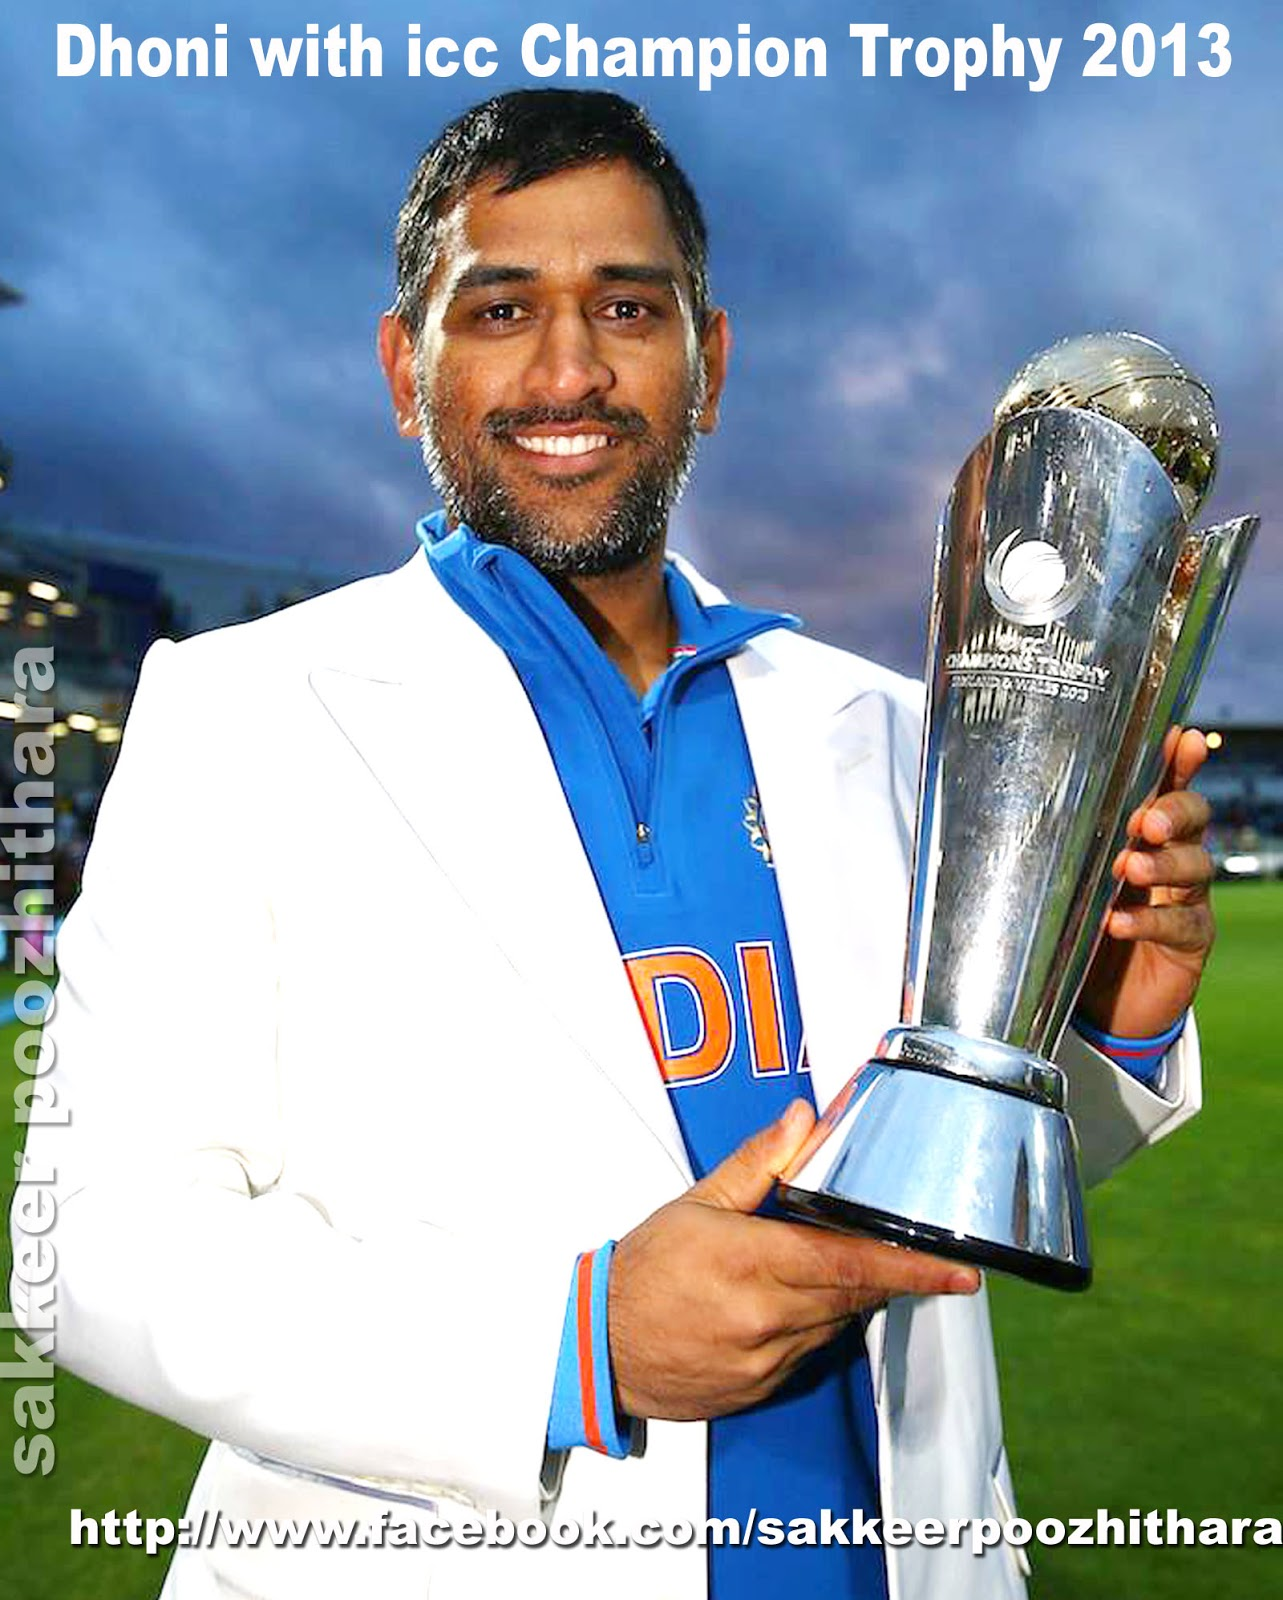 Dhoni With Icc Champion Trophy 2013 ICC T20 WORLD CUP 2007 2011